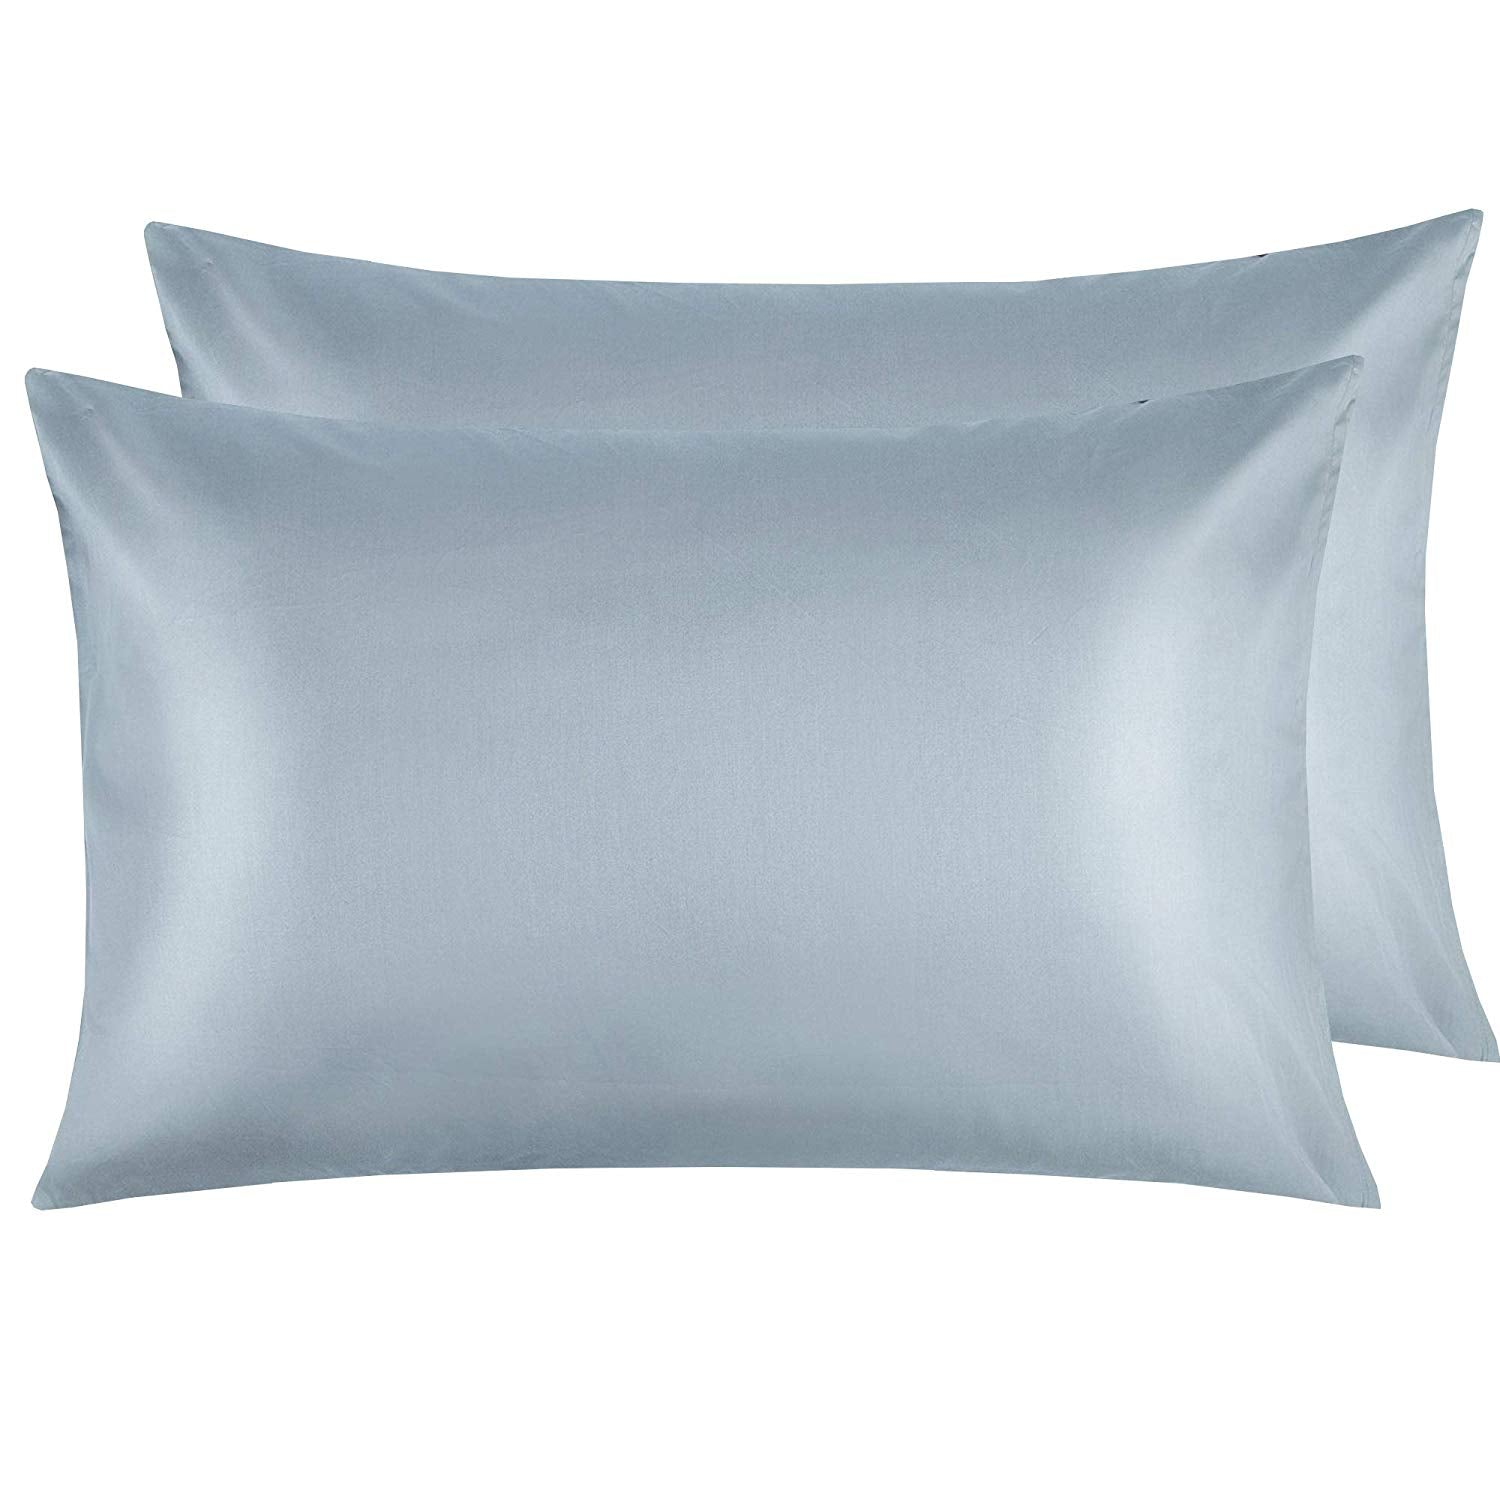 NTBAY Silky Satin Pillowcases for Hair Set of 2 - NTBAY